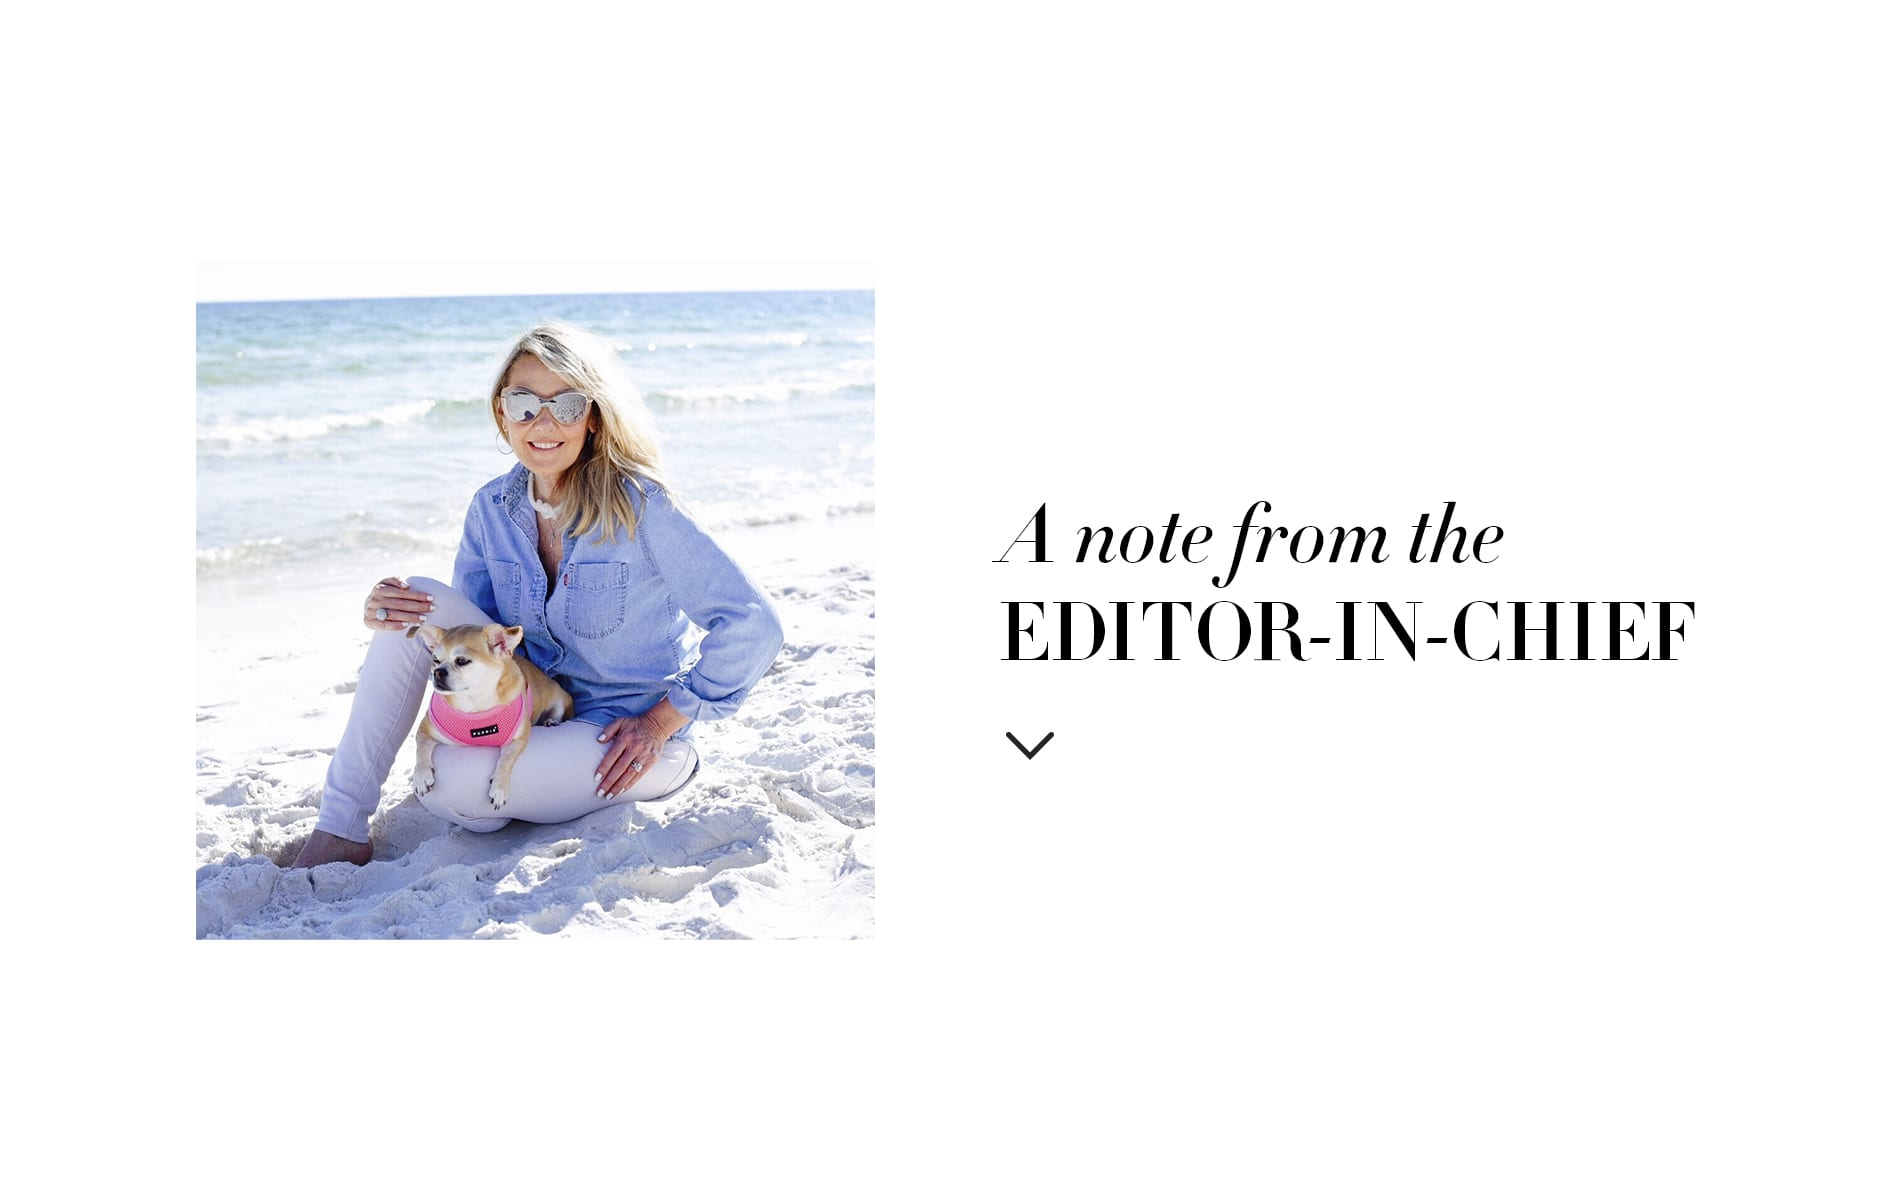 Lisa Burwell, VIE Magazine Editor-in-Chief